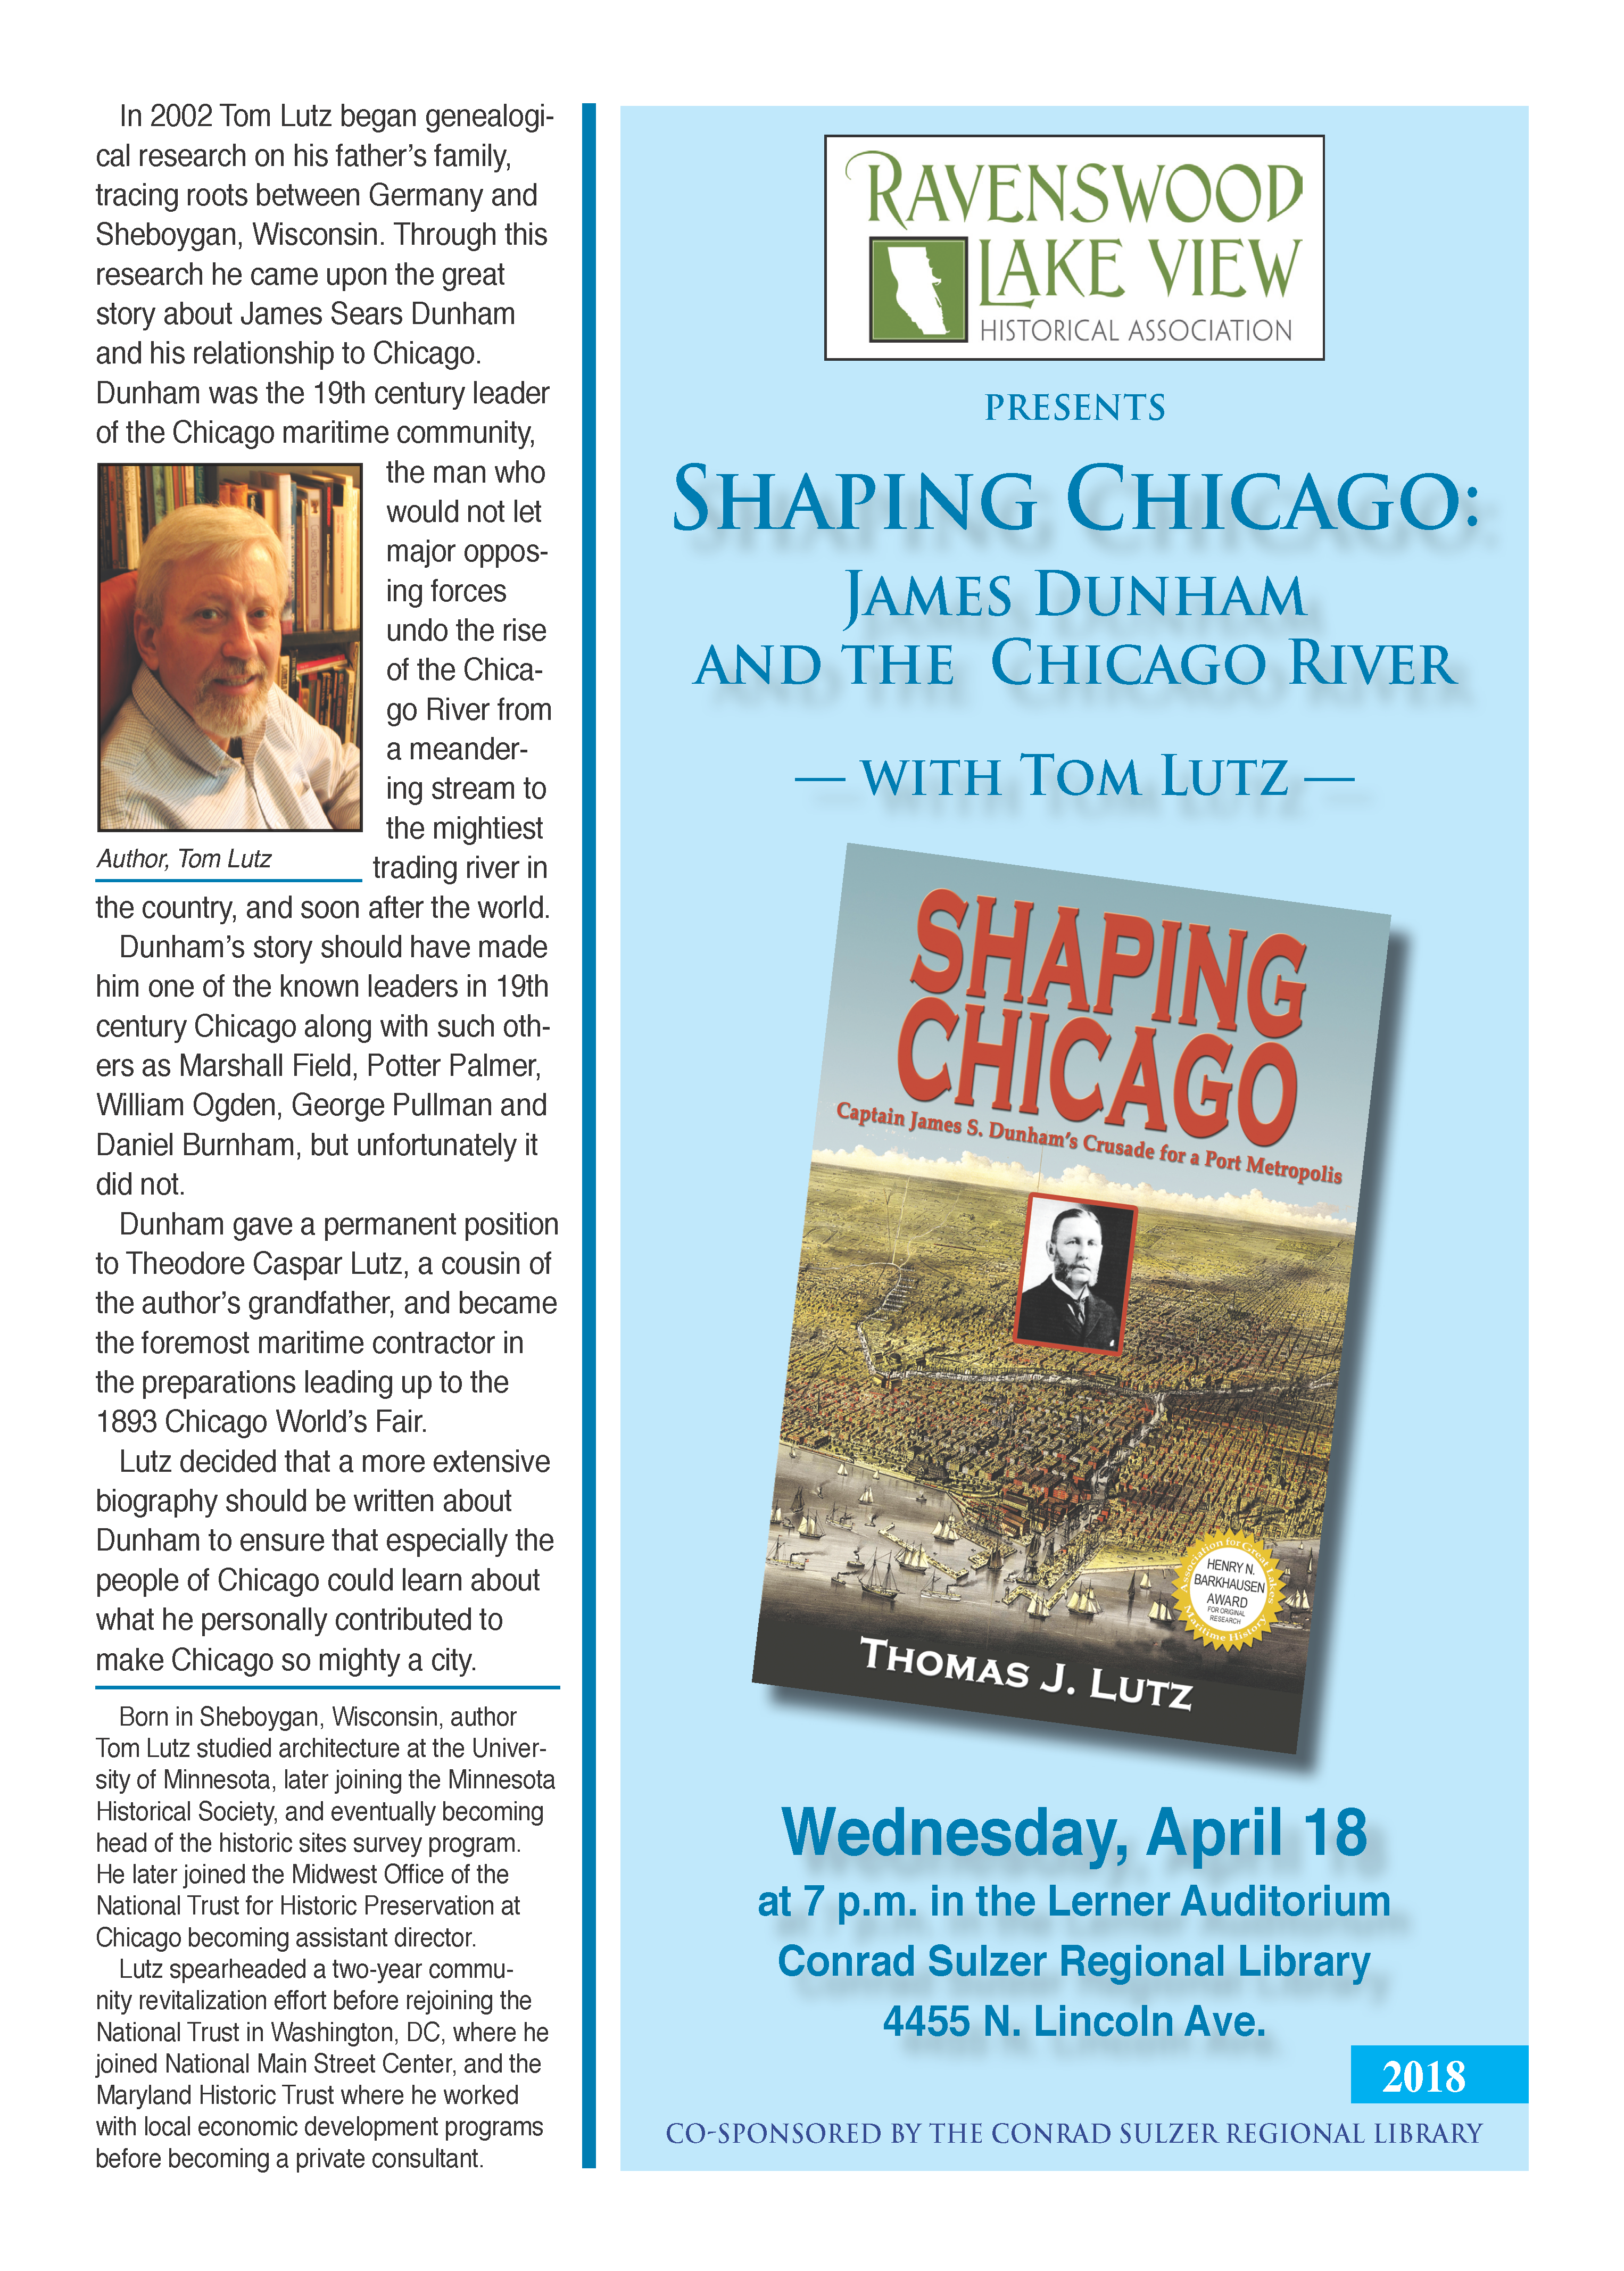 Shaping Chicago: James Dunham and the Chicago River - April 18, 7pm - Lerner Auditorium, Conrad Sulzer Regional Library, 4455 N. Lincoln Ave.